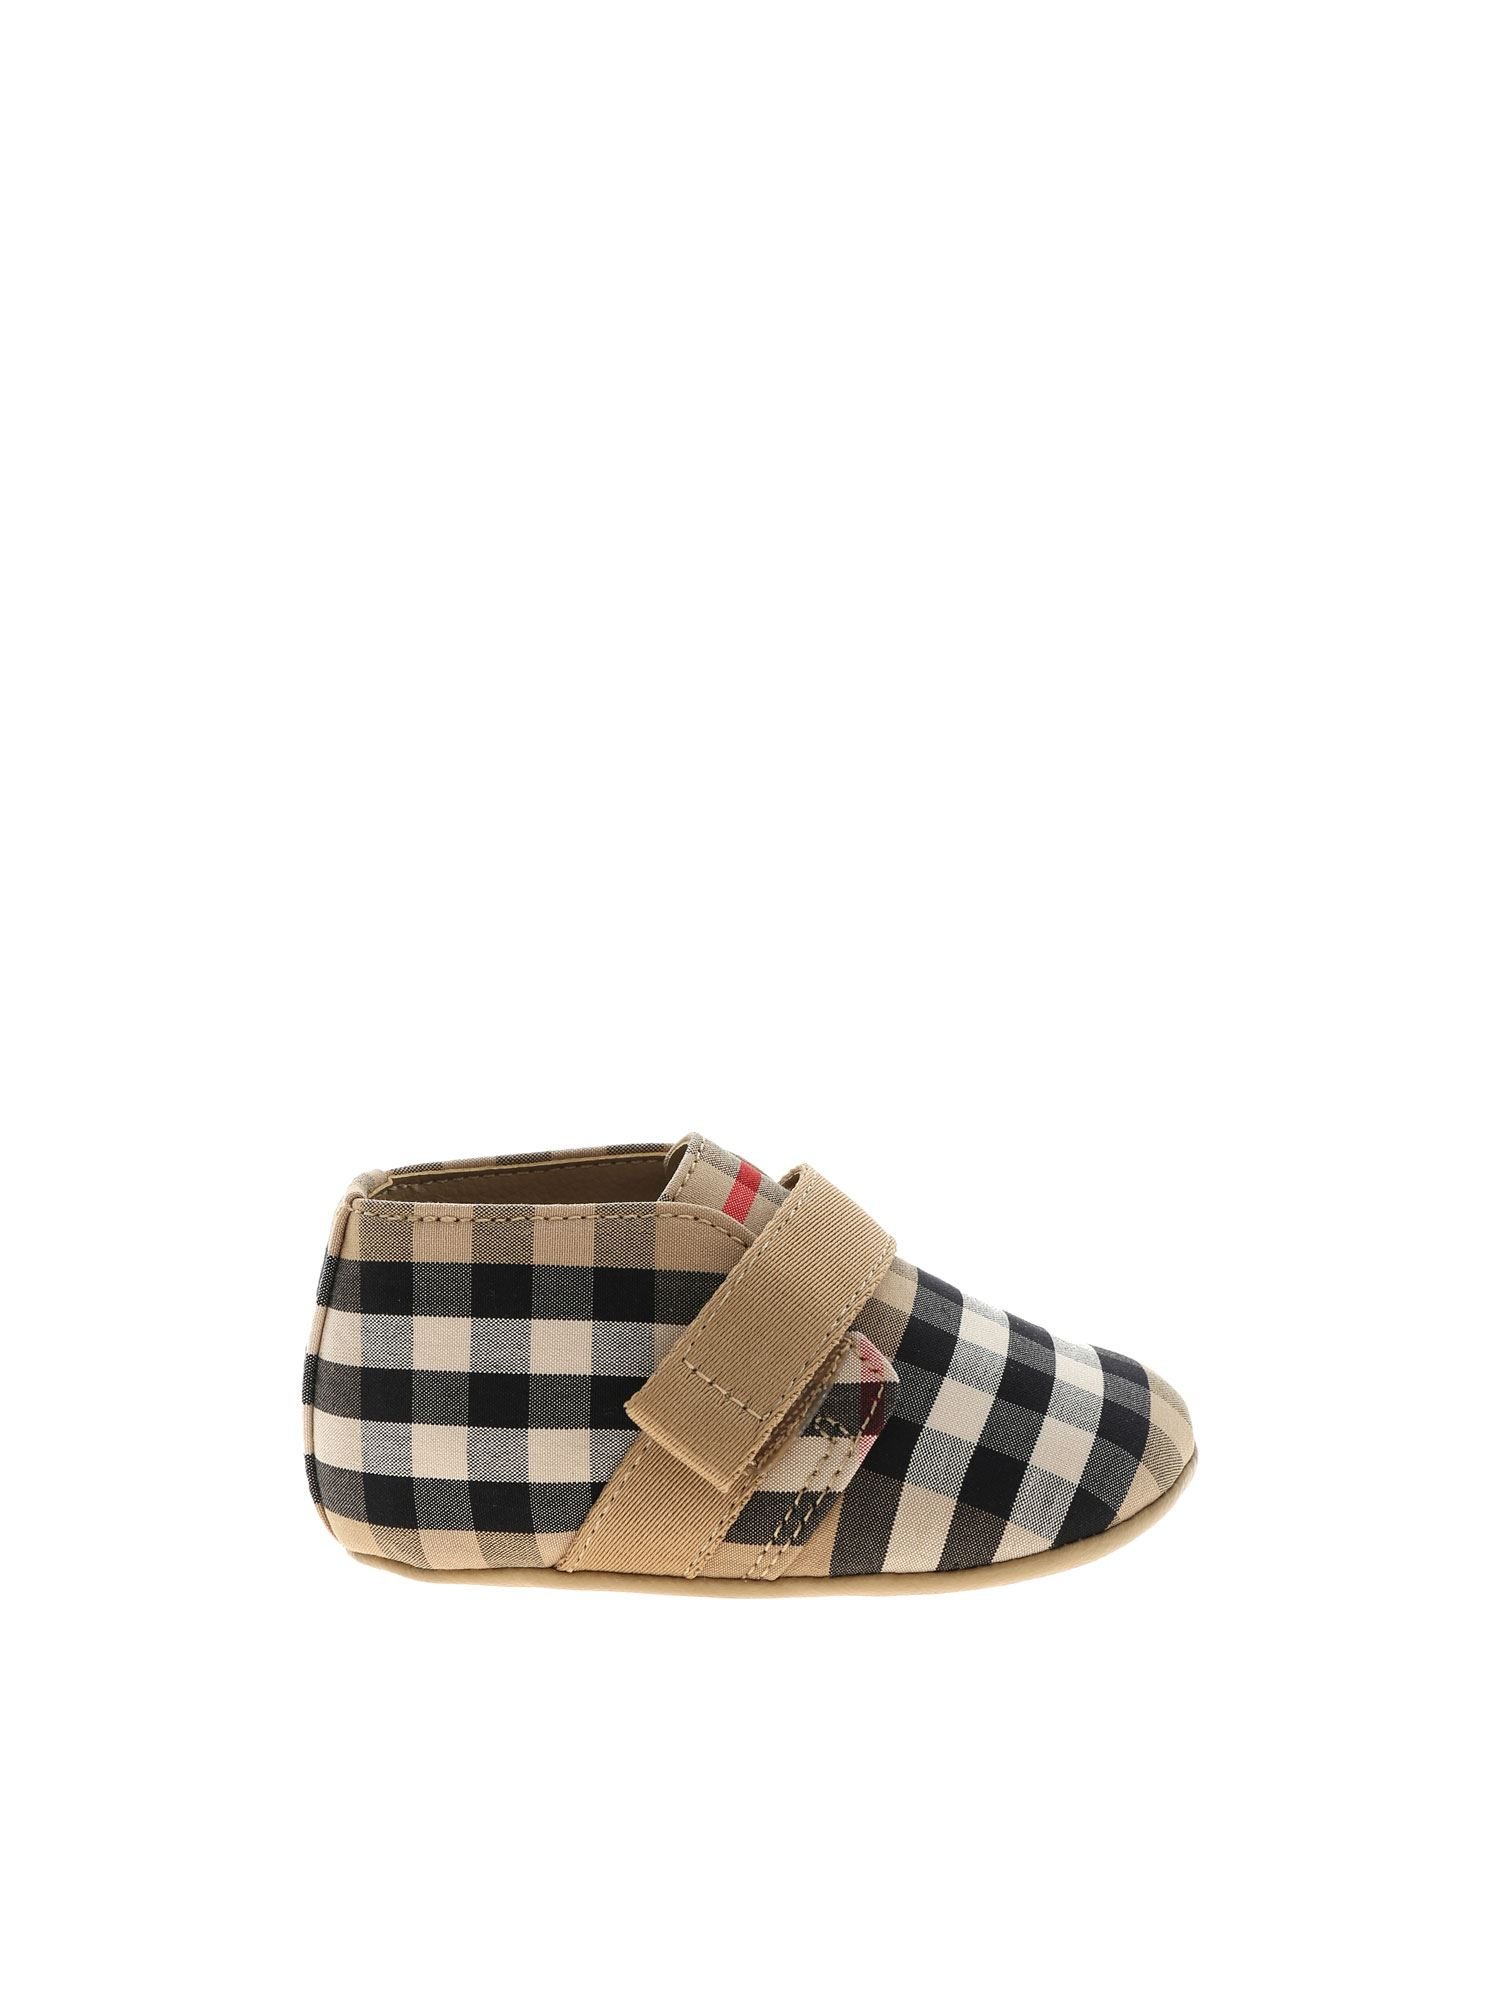 Burberry CHARLTON CHECK SNEAKERS IN BEIGE